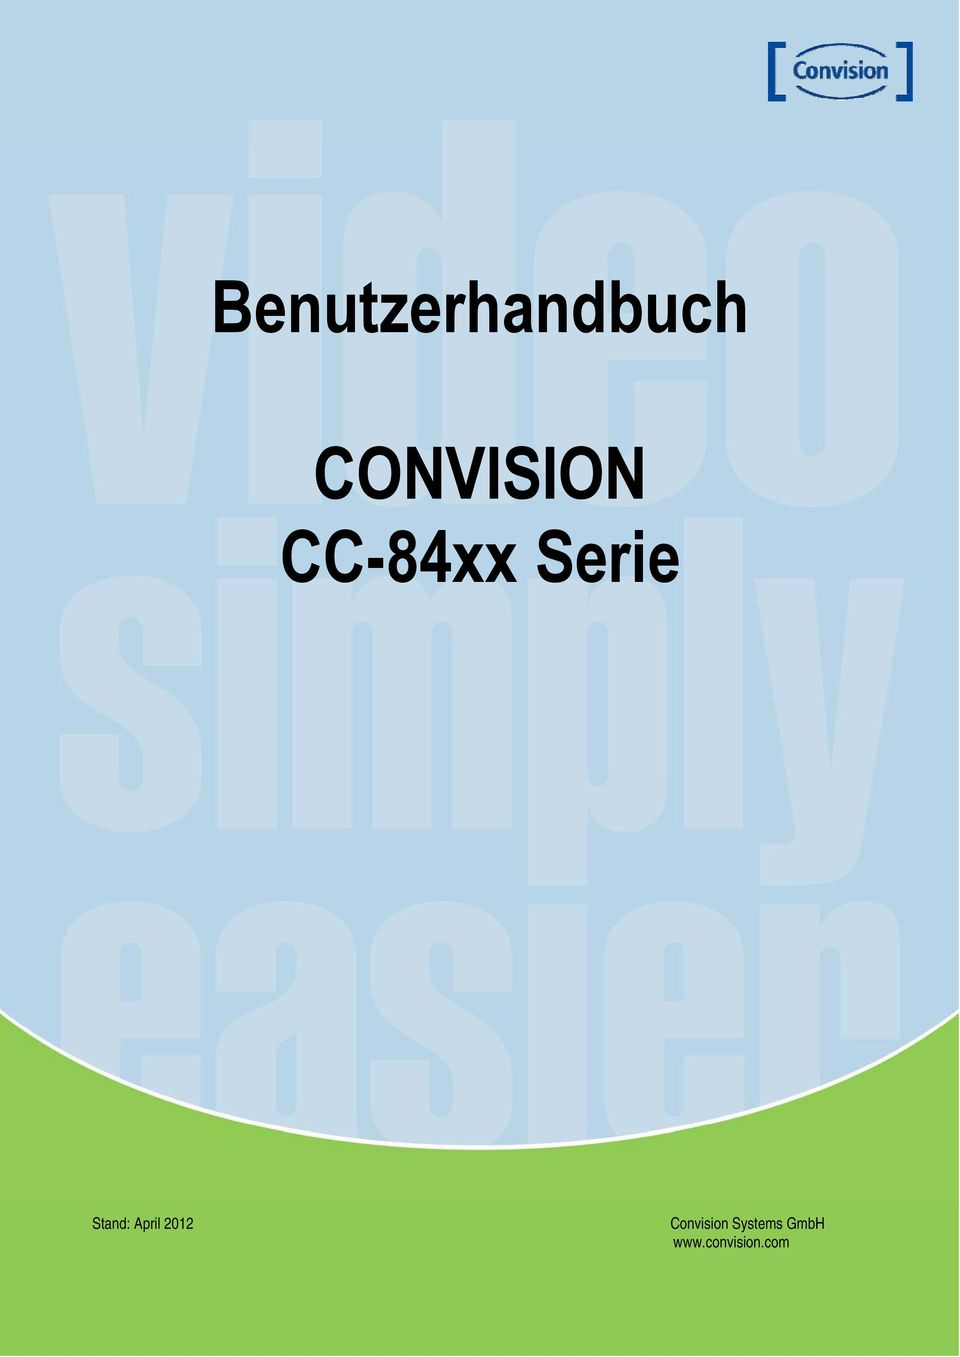 2012 Convision Systems GmbH